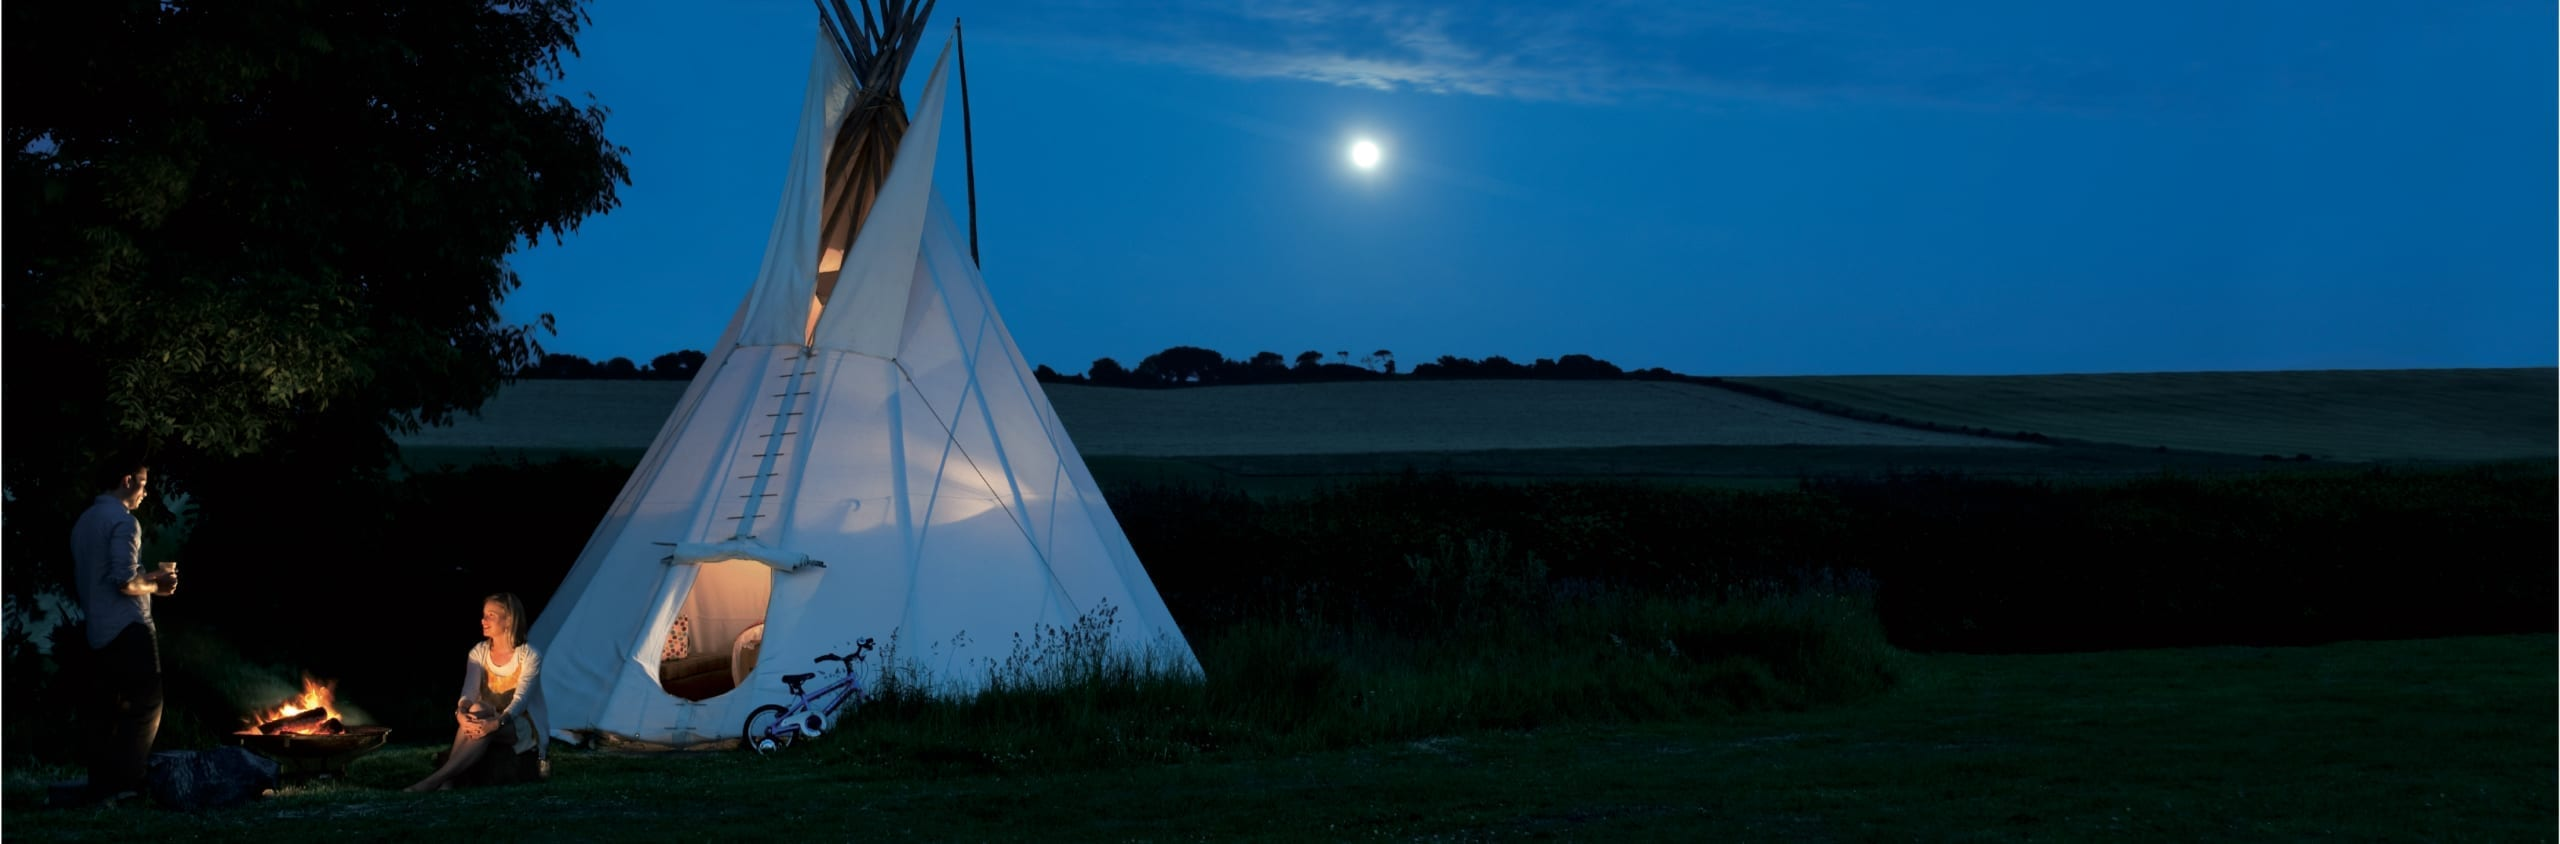 Tipi tent erect in field